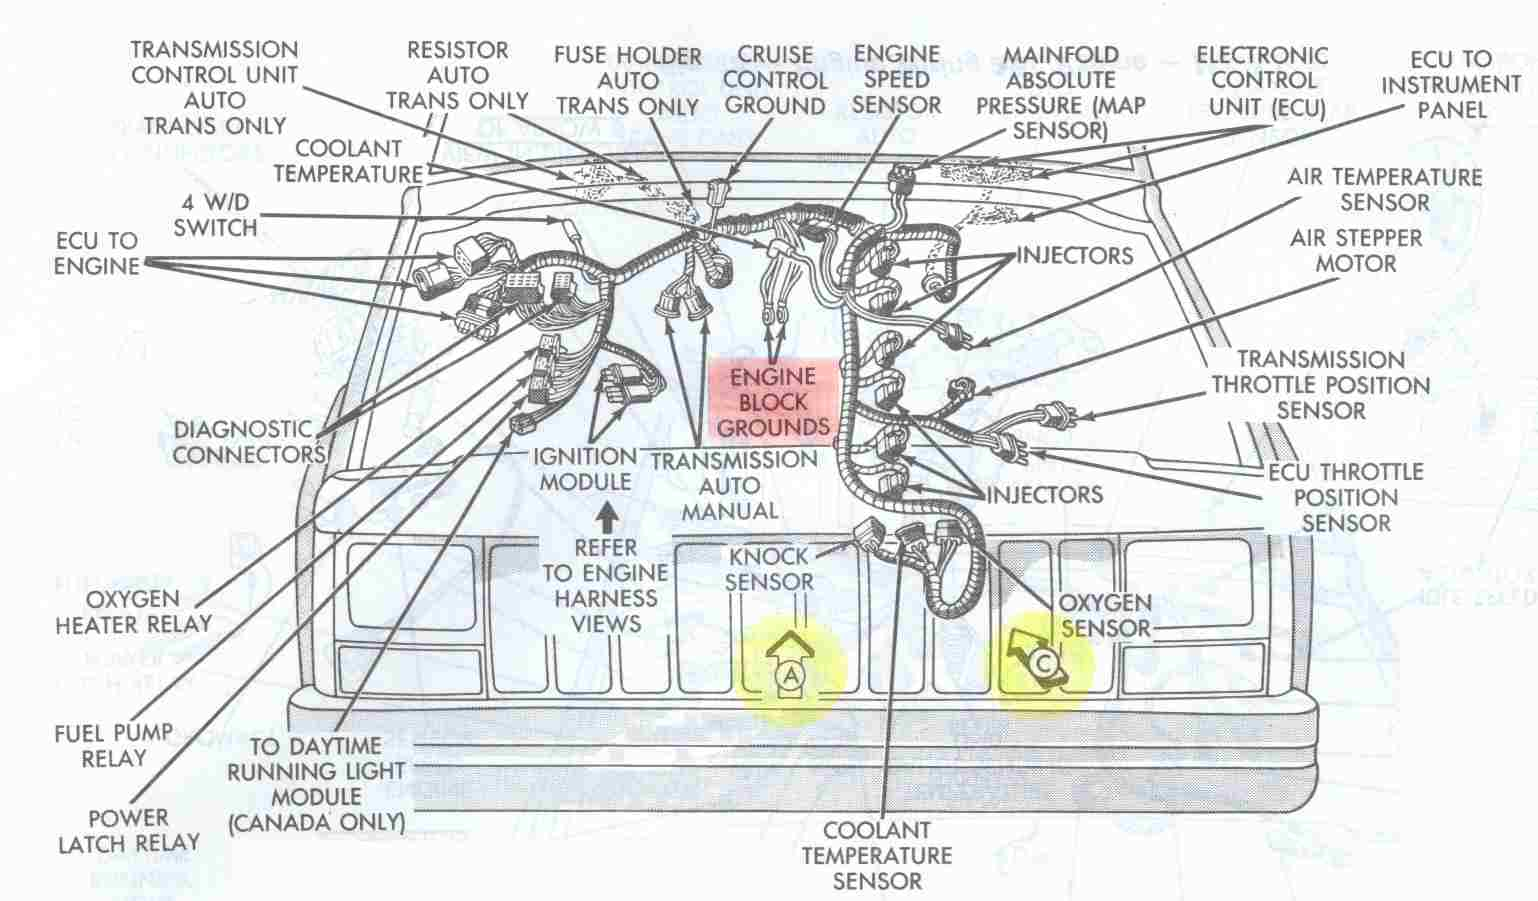 93 Ford Mustang Alternator Wiring Diagram 1993 Pdf Will Be A Thing Jeep Cherokee Electrical Diagnosing Erratic Behavior Of Radio